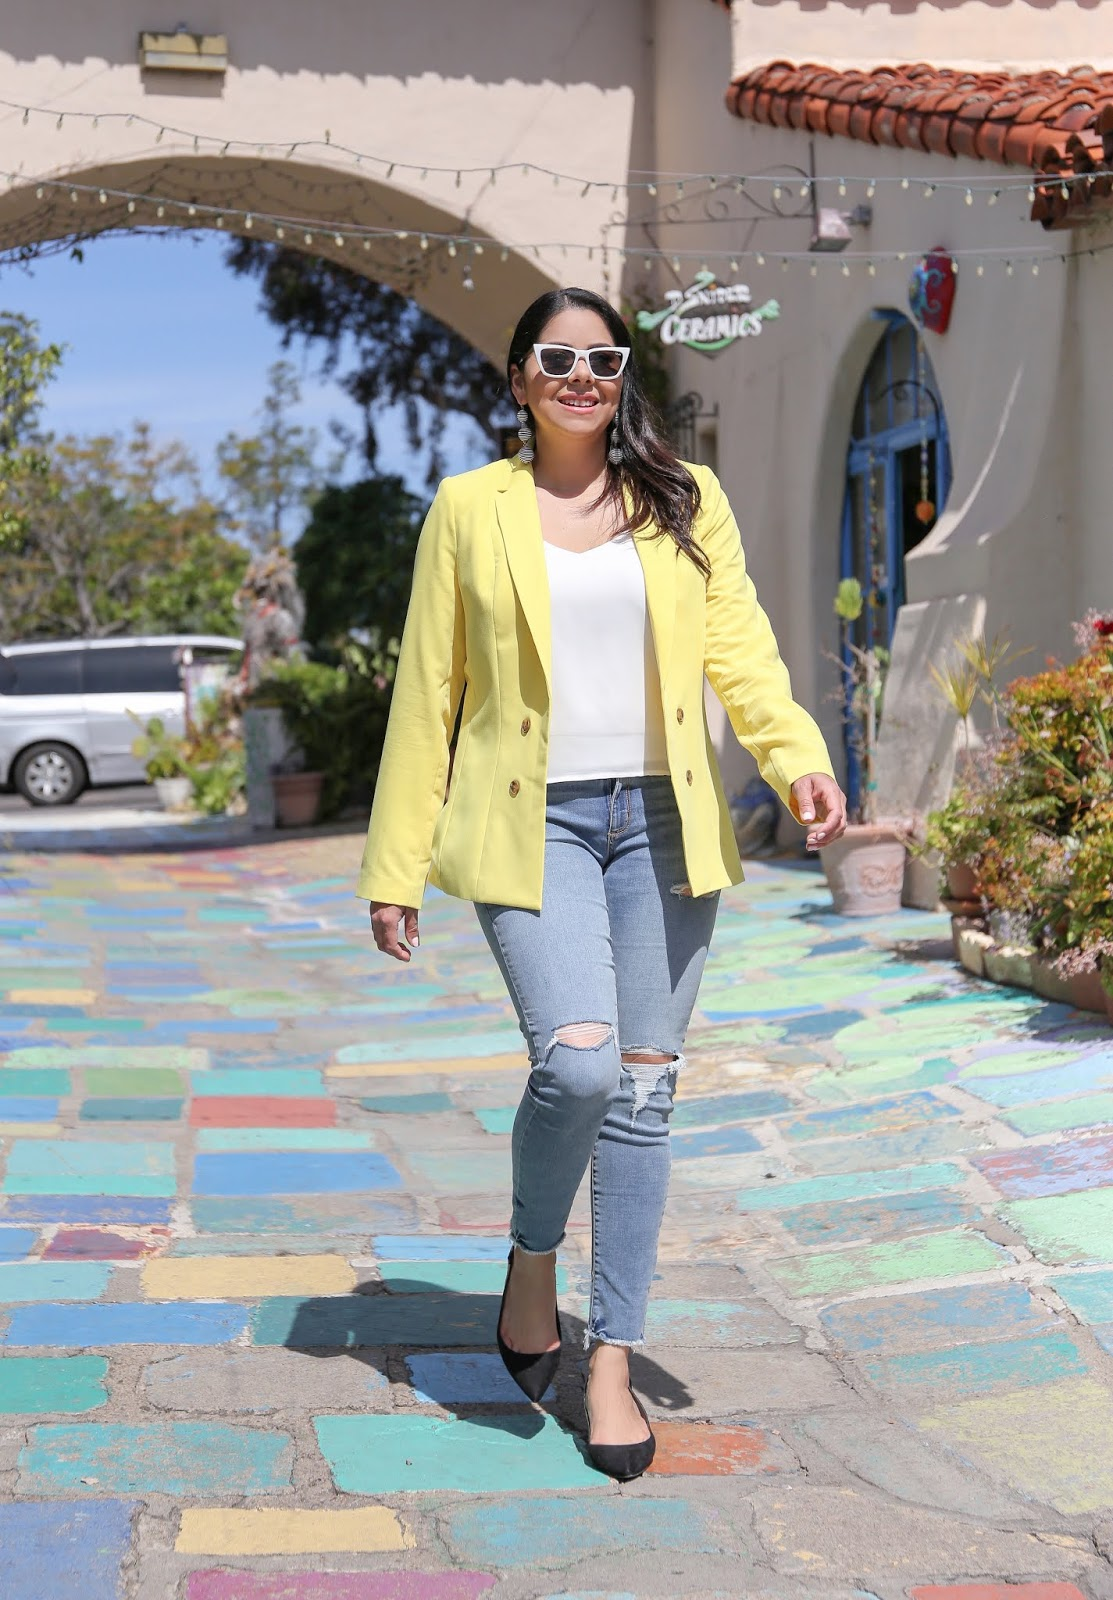 yellow blazer and jeans outfit, san diego fashion blogger inside spanish village